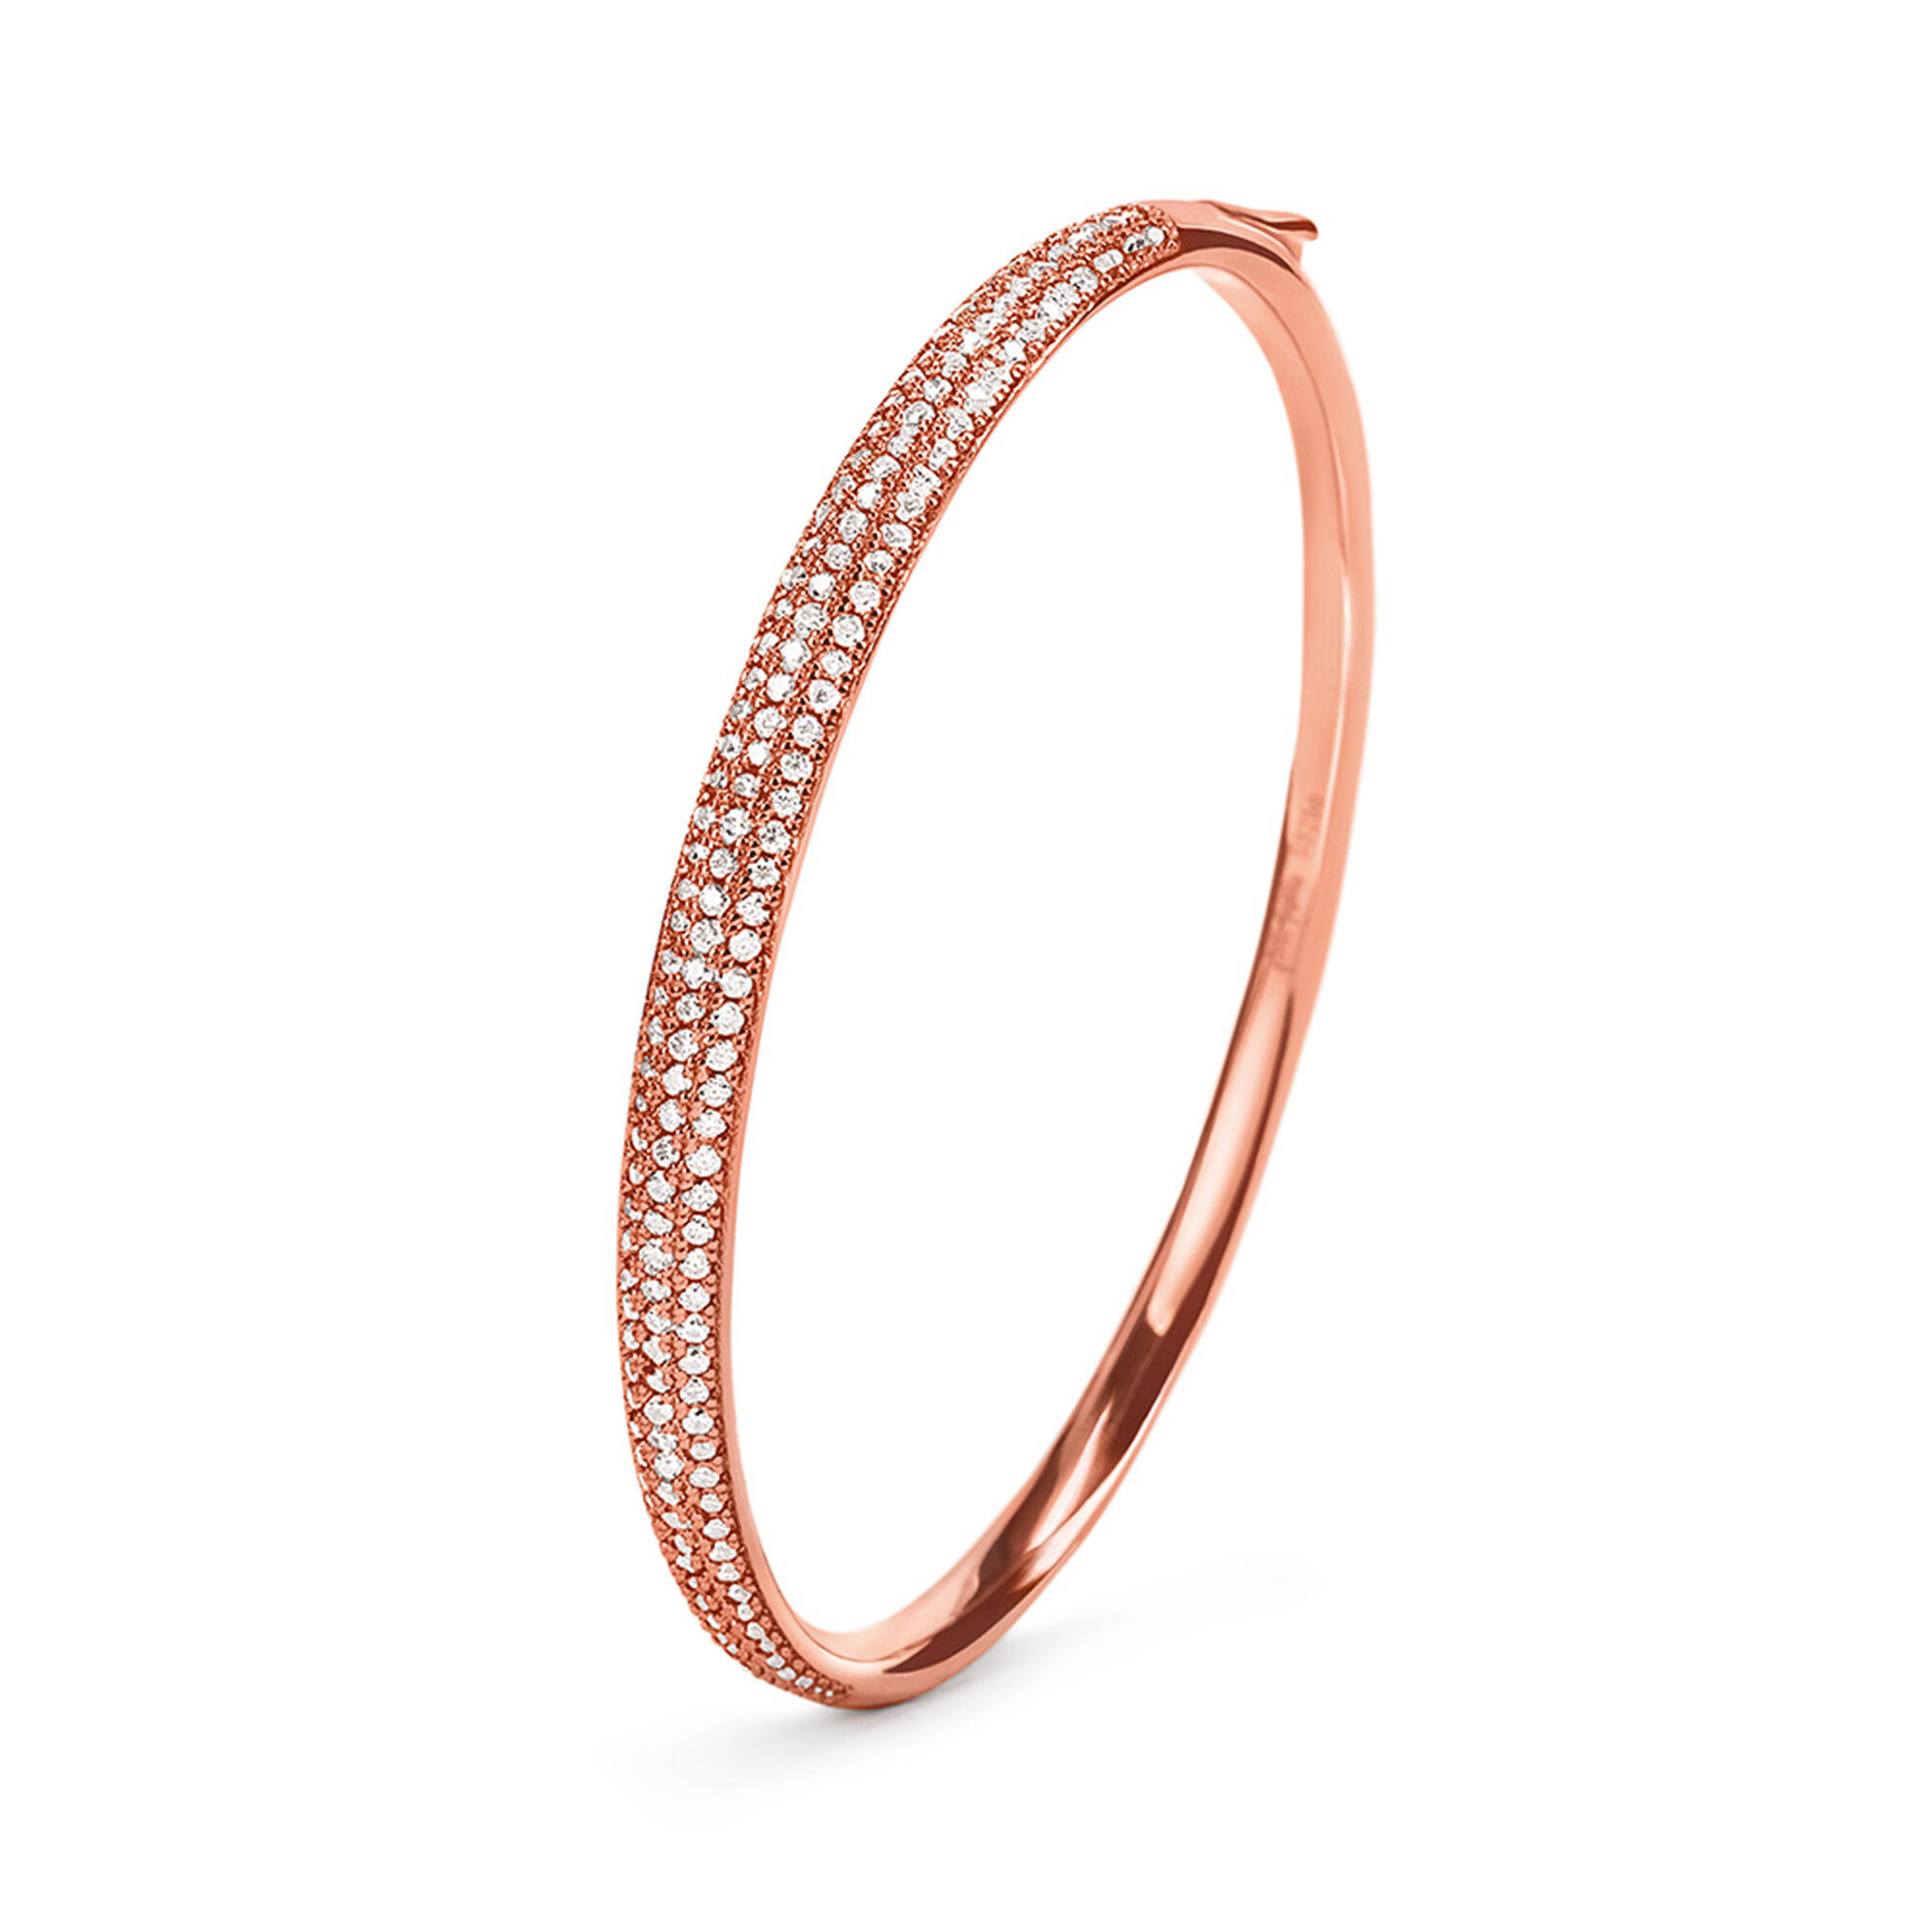 branded non pave gold bangle rose diamond jewelry bangles bracelet